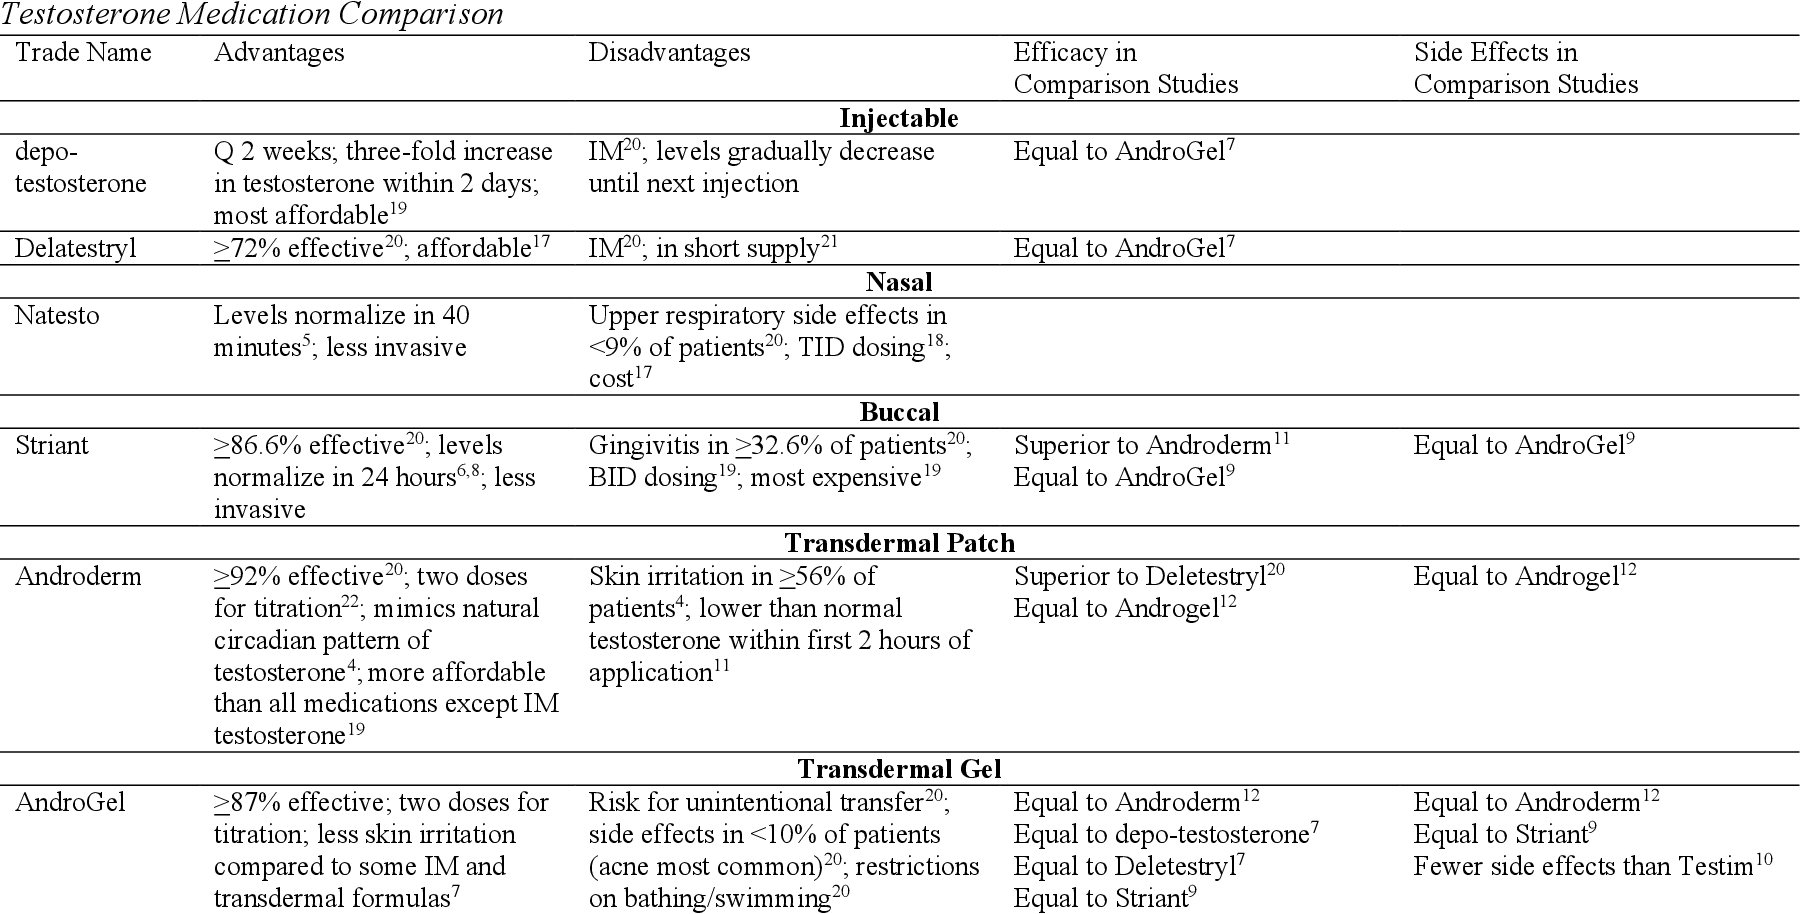 Comparison of Testosterone Replacement Therapy Medications in the